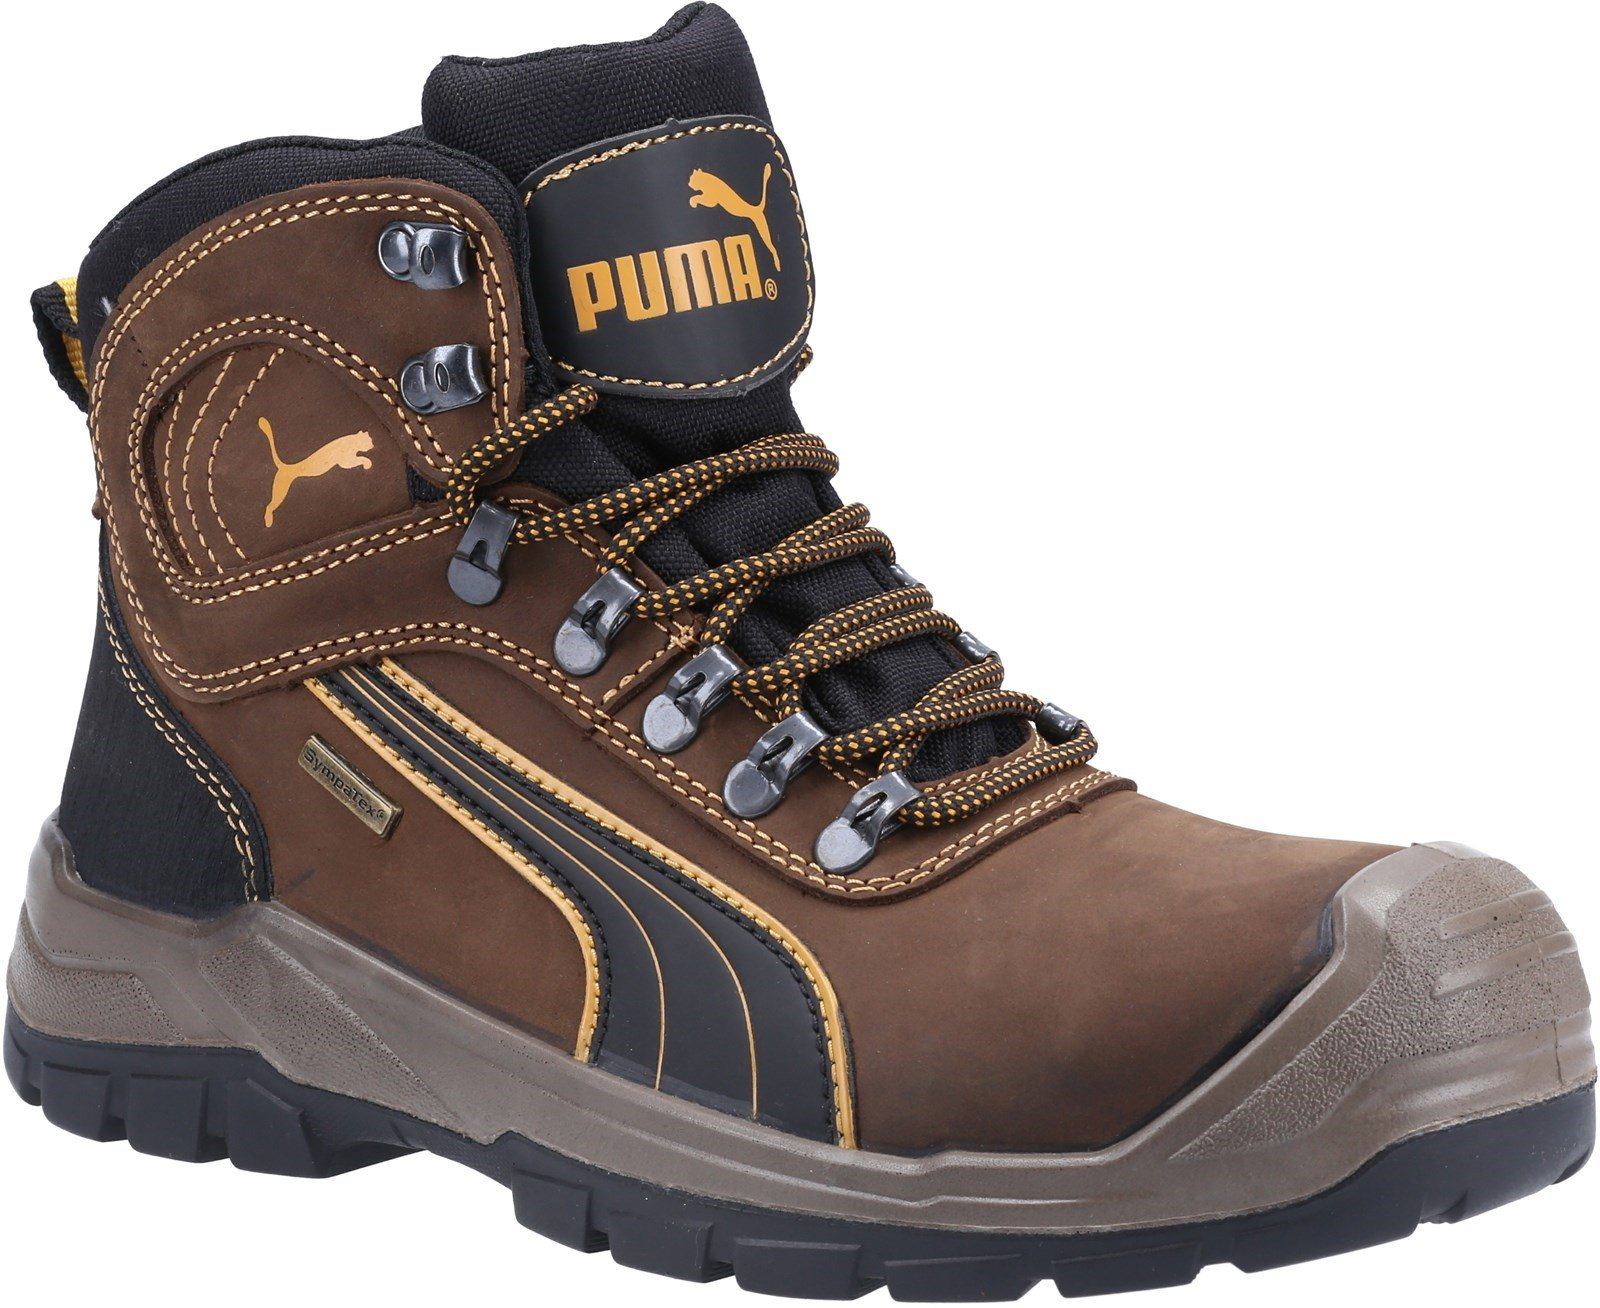 Puma Safety Unisex Sierra Nevada Mid Lace up Boot Brown 23084 - Brown 6